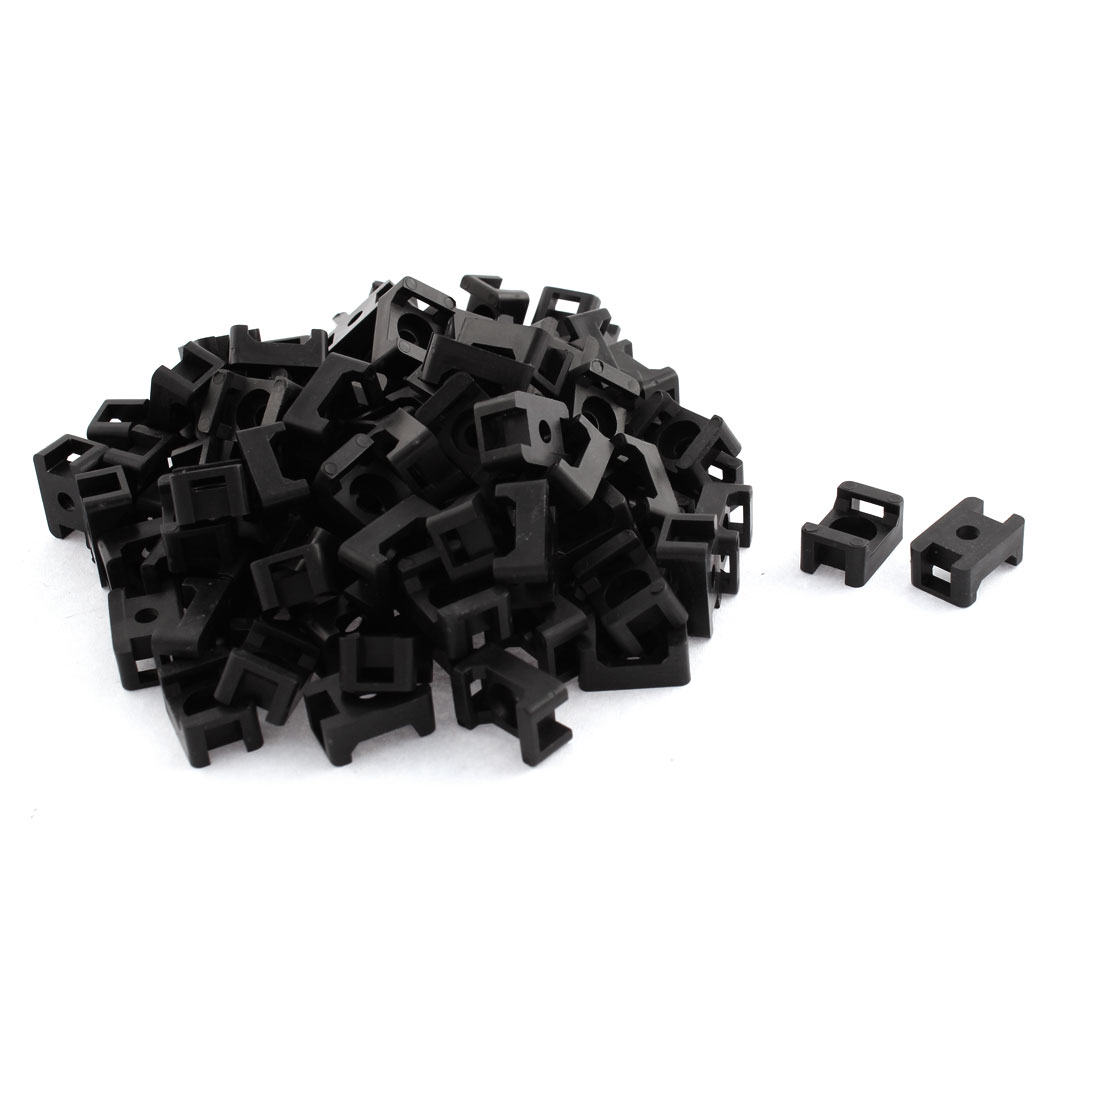 5mm Width Black Plastic Base Saddle Type Wire Holder Cable Tie Mount 100 Pcs